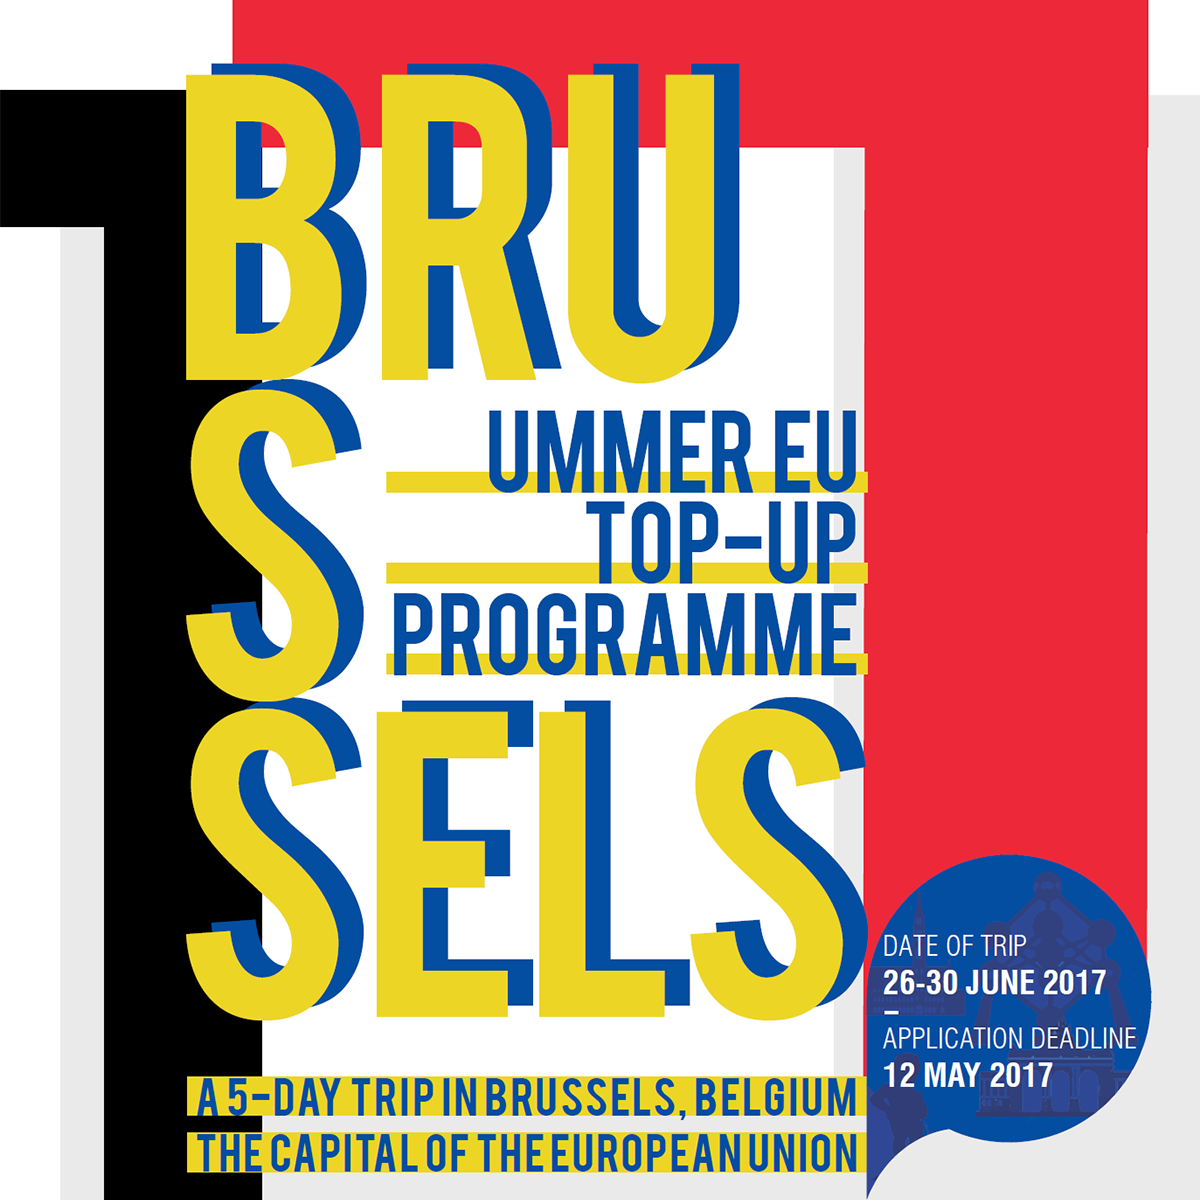 Summer EU Student Exchange: Top-up Programme Brussels 2017